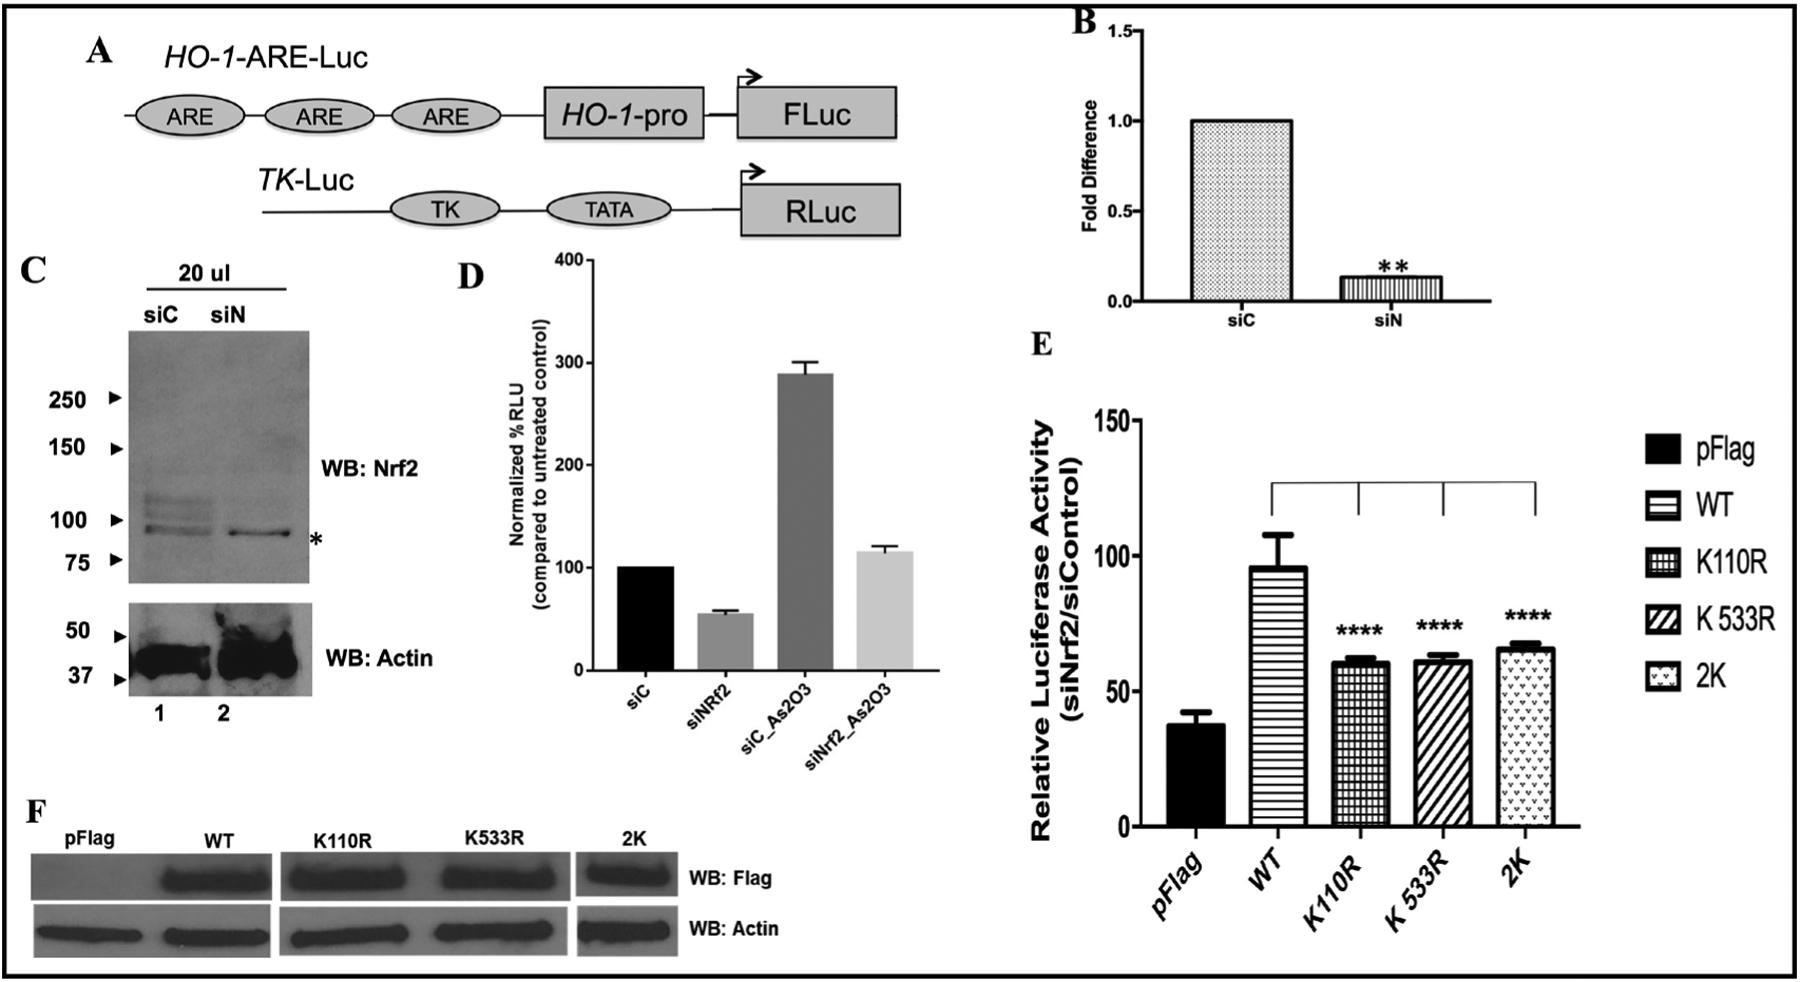 SUMO-2 acceptor K 110 and K 533 are needed for efficient transcriptional a ctivity of Nrf2. A, Schematic of the HO-1-ARE-Luc (firefly luciferase, experimental) and Tk-Luc (control) promoters used in the luciferase reporter assay. HEK293T cells were transfected with 100 ηM control siRNA or Nrf2 siRNA for 48 hrs. B. Quantitative RT-PCR analysis of the levels of Nrf2 mRNA in HEK293T cells after knockdown with siC: scrambled control siRNA, siN: siRNA against 3'UTR of endogenous Nrf2. Results are mean ±S.E. (n=3). ** indicate there is a statistically significant difference. C. Western blot analysis of Nrf2 protein levels after siRNA mediated knockdown (* denotes the non-specific reactivity of the antibody). D. To monitor Nrf2 mediated transcriptional activation shown is the relative luciferase activity driven by HO1-ARE promoter in HEK293T cells treated with either control siRNA (siC) or siRNA against Nrf2 (siN) without activation, or with siRNA and activation by treatment with As2O3 (siC_As2O3 and siN_As2O3). Results are mean ±S.E. (n=9). ** indicates there is a statistically significant difference in all observations compared to siC. E. To study the significance of the SUMO-acceptor lysine in Nrf2 rescue experiments were performed using plasmid expressing either wild type Flag-hNrf2 (WT) or different mutant Flag-hNrf2 (K110R, K533R or 2K, K110R/K533R double mutant) in the HEK293T cells treated with siRNA against Nrf2. pCMV-Flag vector (pFlag) alone was used as a control. Shown is the relative luciferase activity driven by HO1-ARE promoter mediated by Flag-tagged hNrf2 wild type or mutants. Results are mean ±S.E. (n=9). ****, statistically different (p